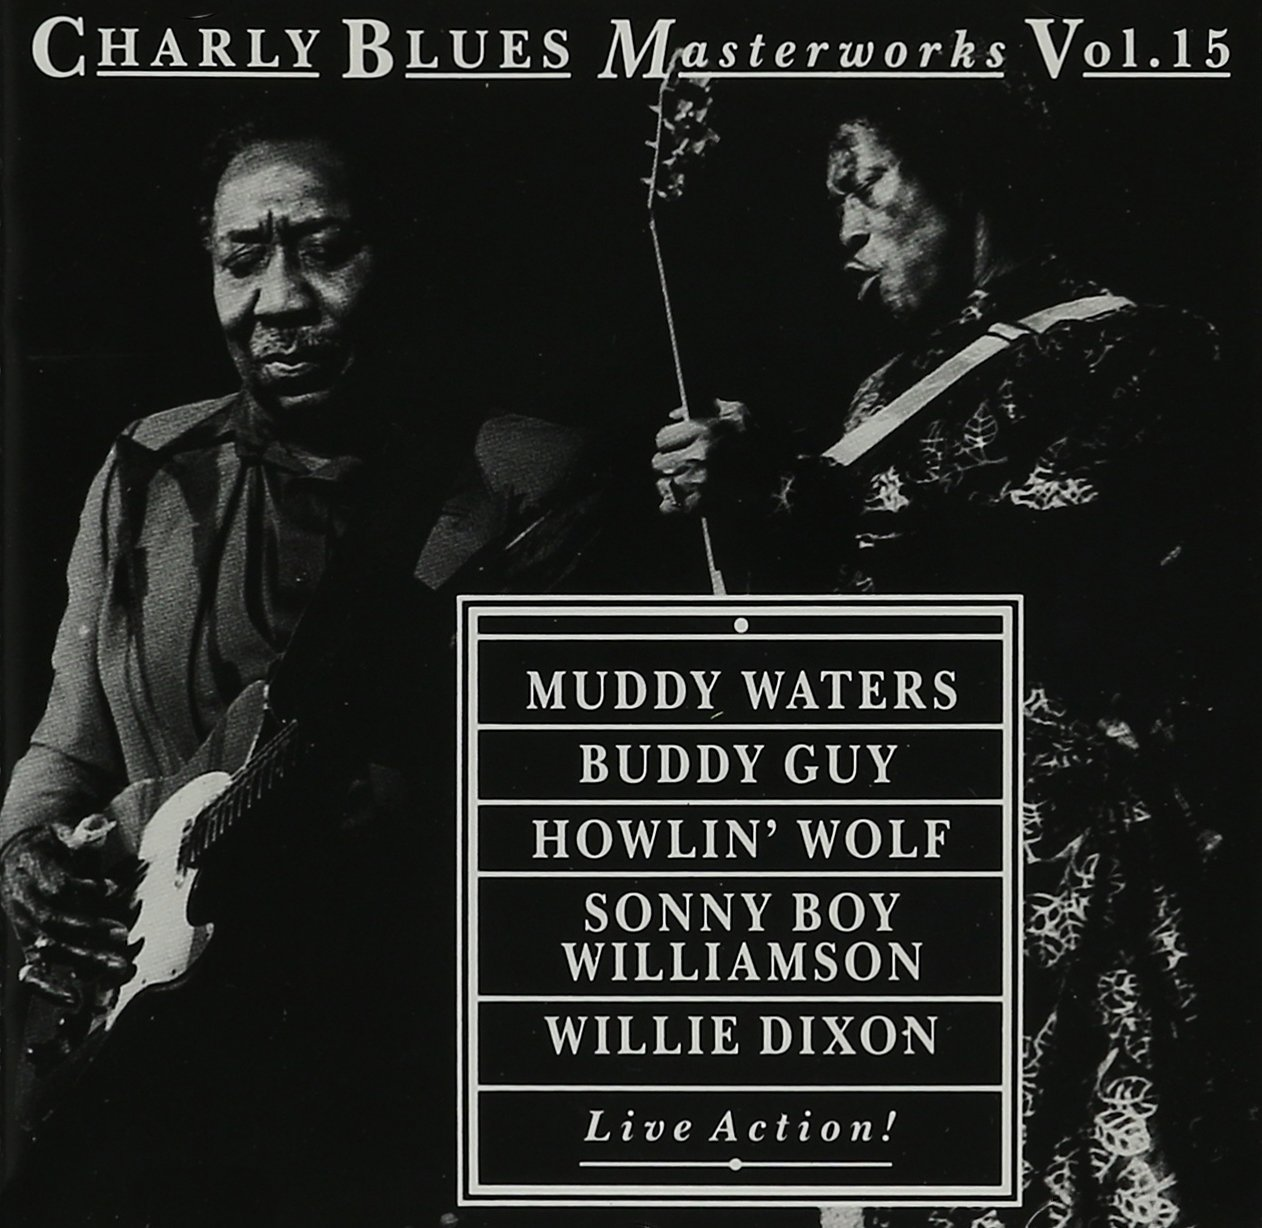 Charly Blues Masterworks, Vol. 15, Live Action!